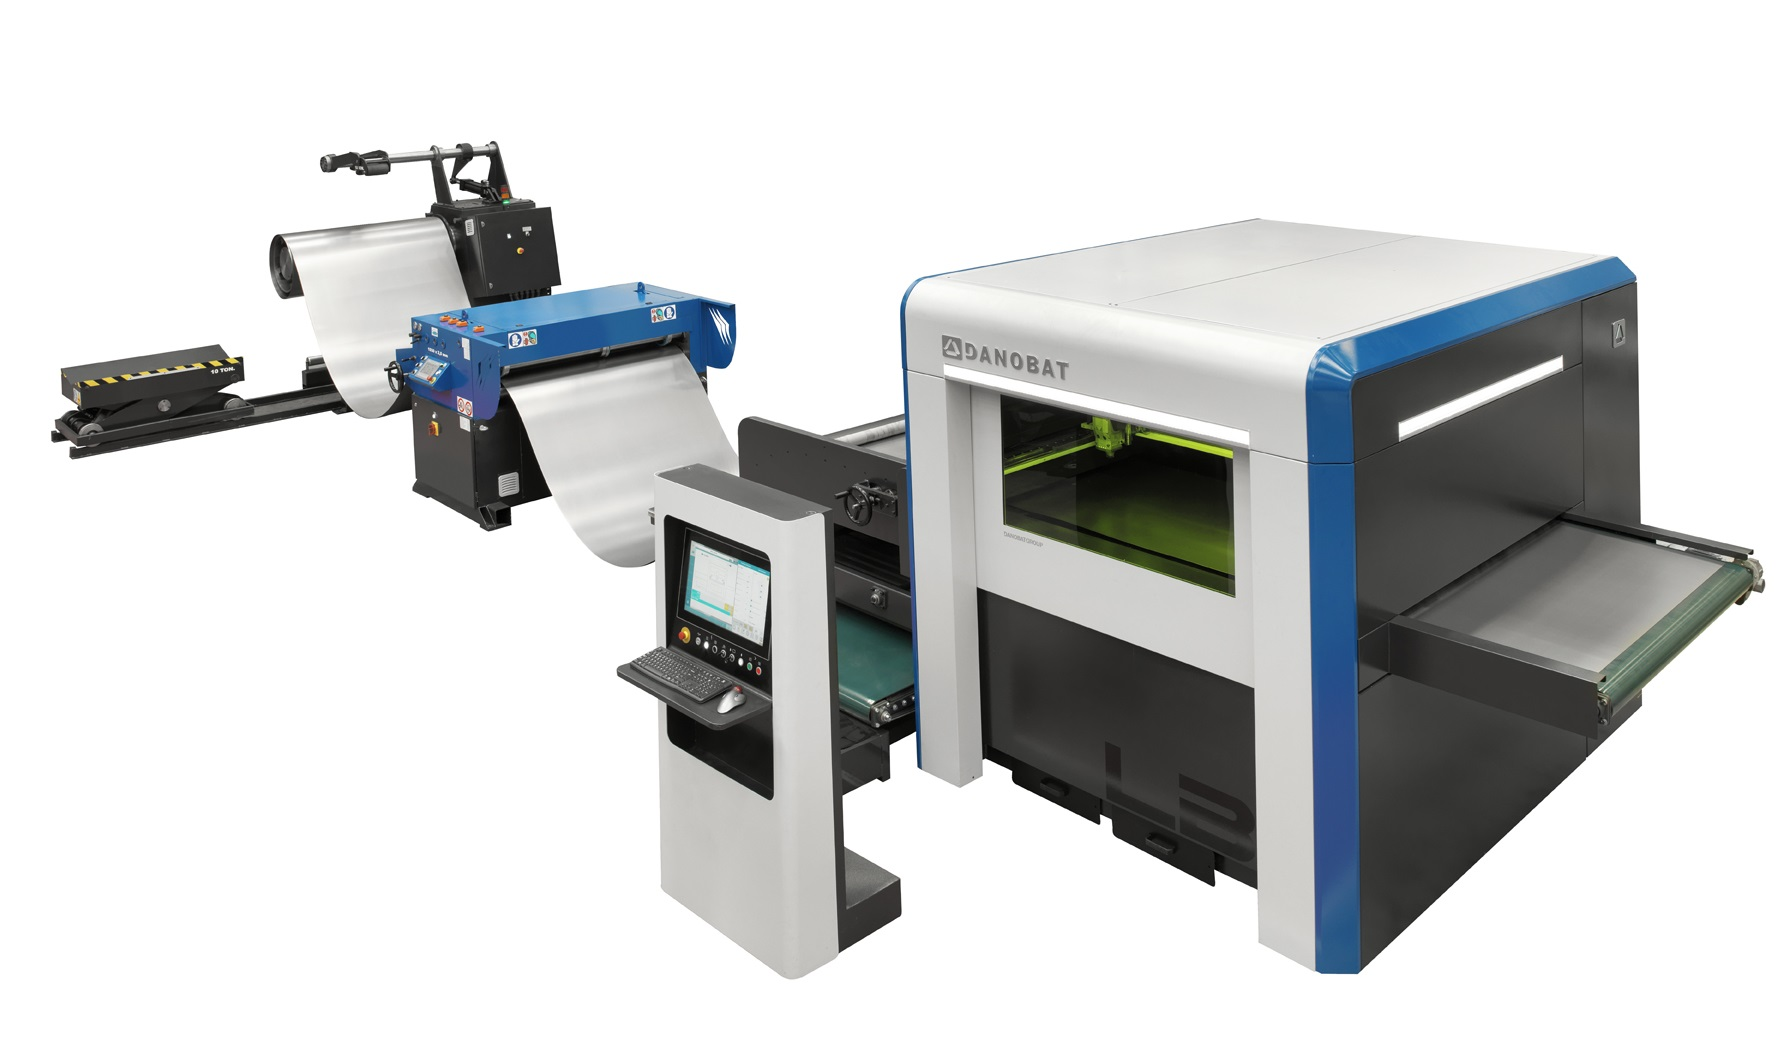 Coil-fed laser cutting DANOBAT, model LB